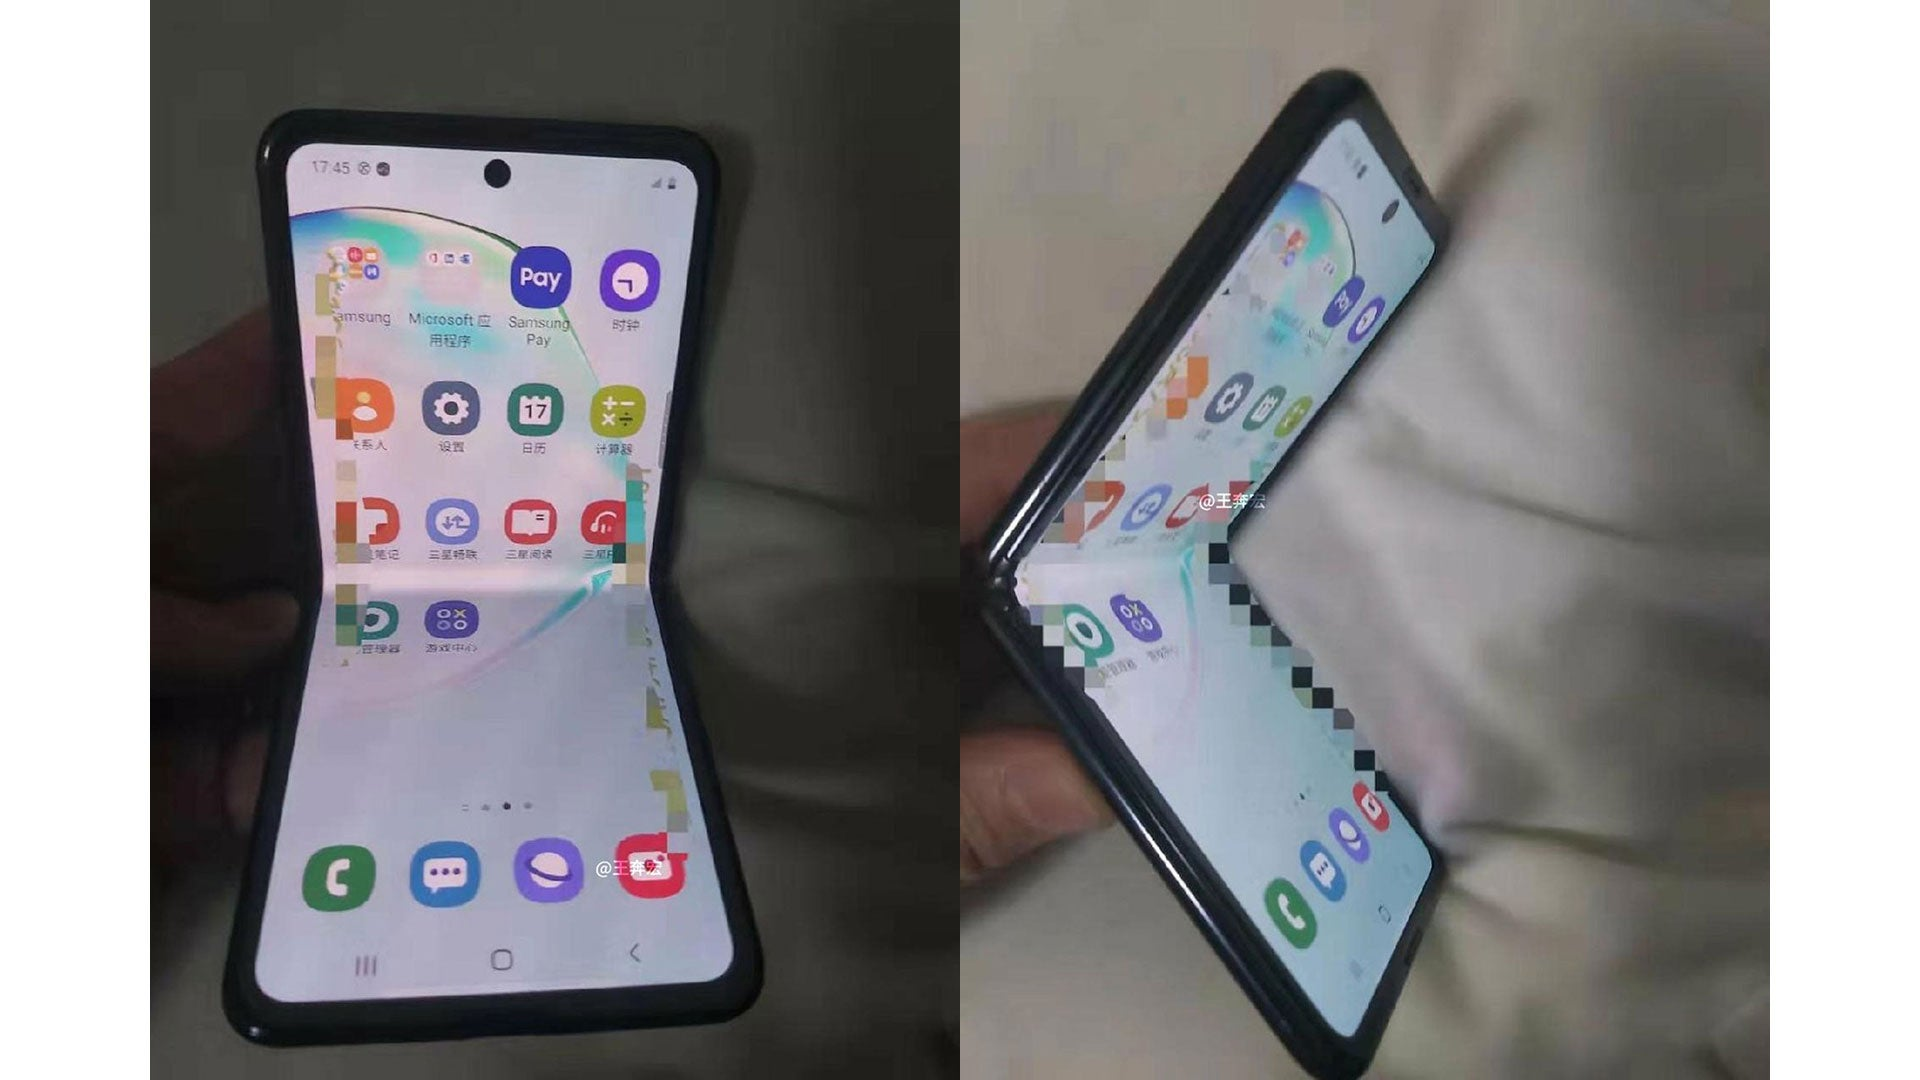 I Really Hope This Rumour About Flexible Glass On The New Samsung Foldable Phone Is True